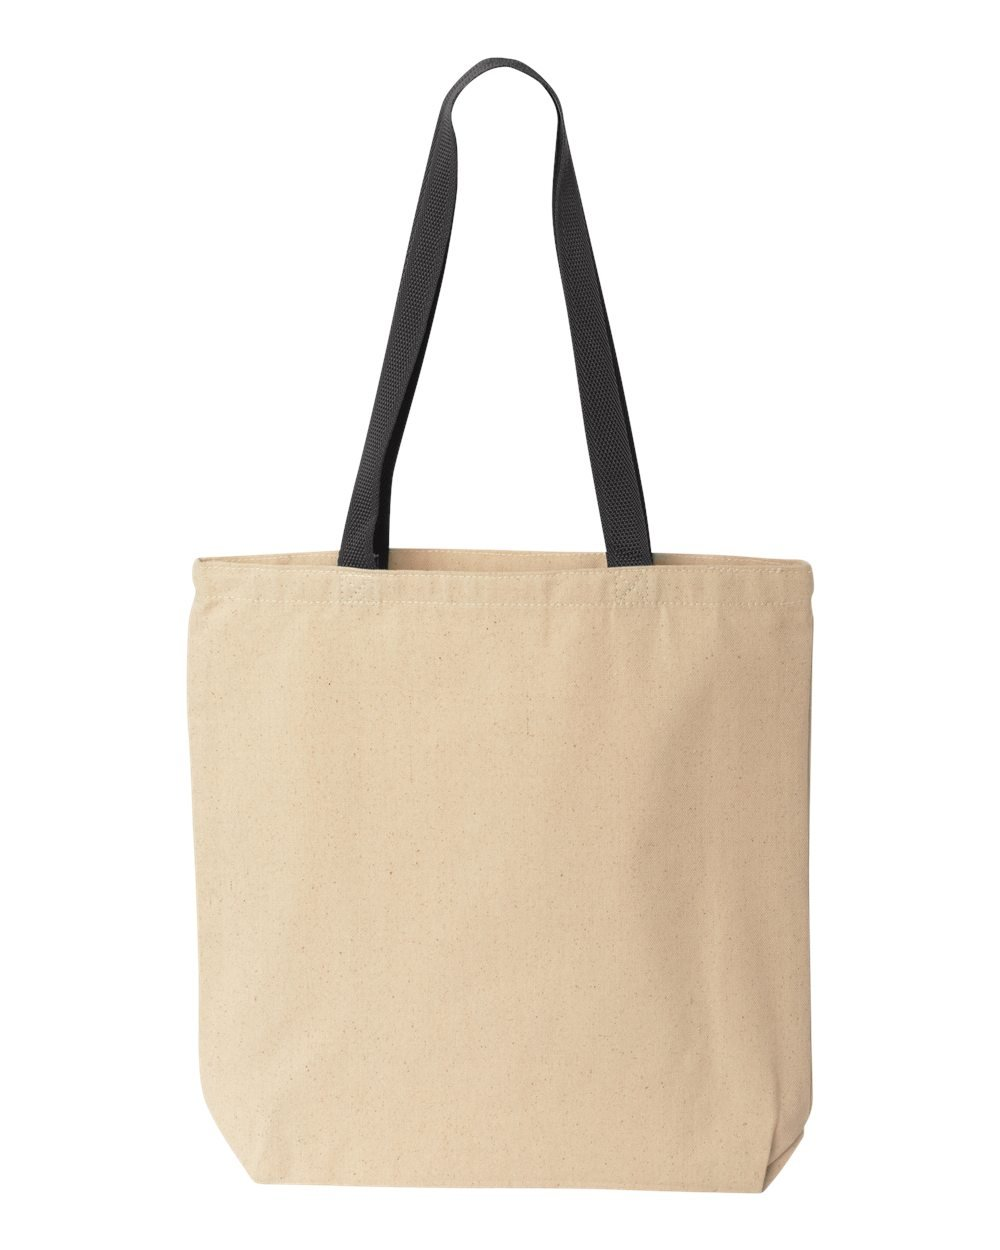 Liberty Bags Marianne Contrast Canvas Tote, One Size, Natural/Black by Liberty Bags (Image #2)